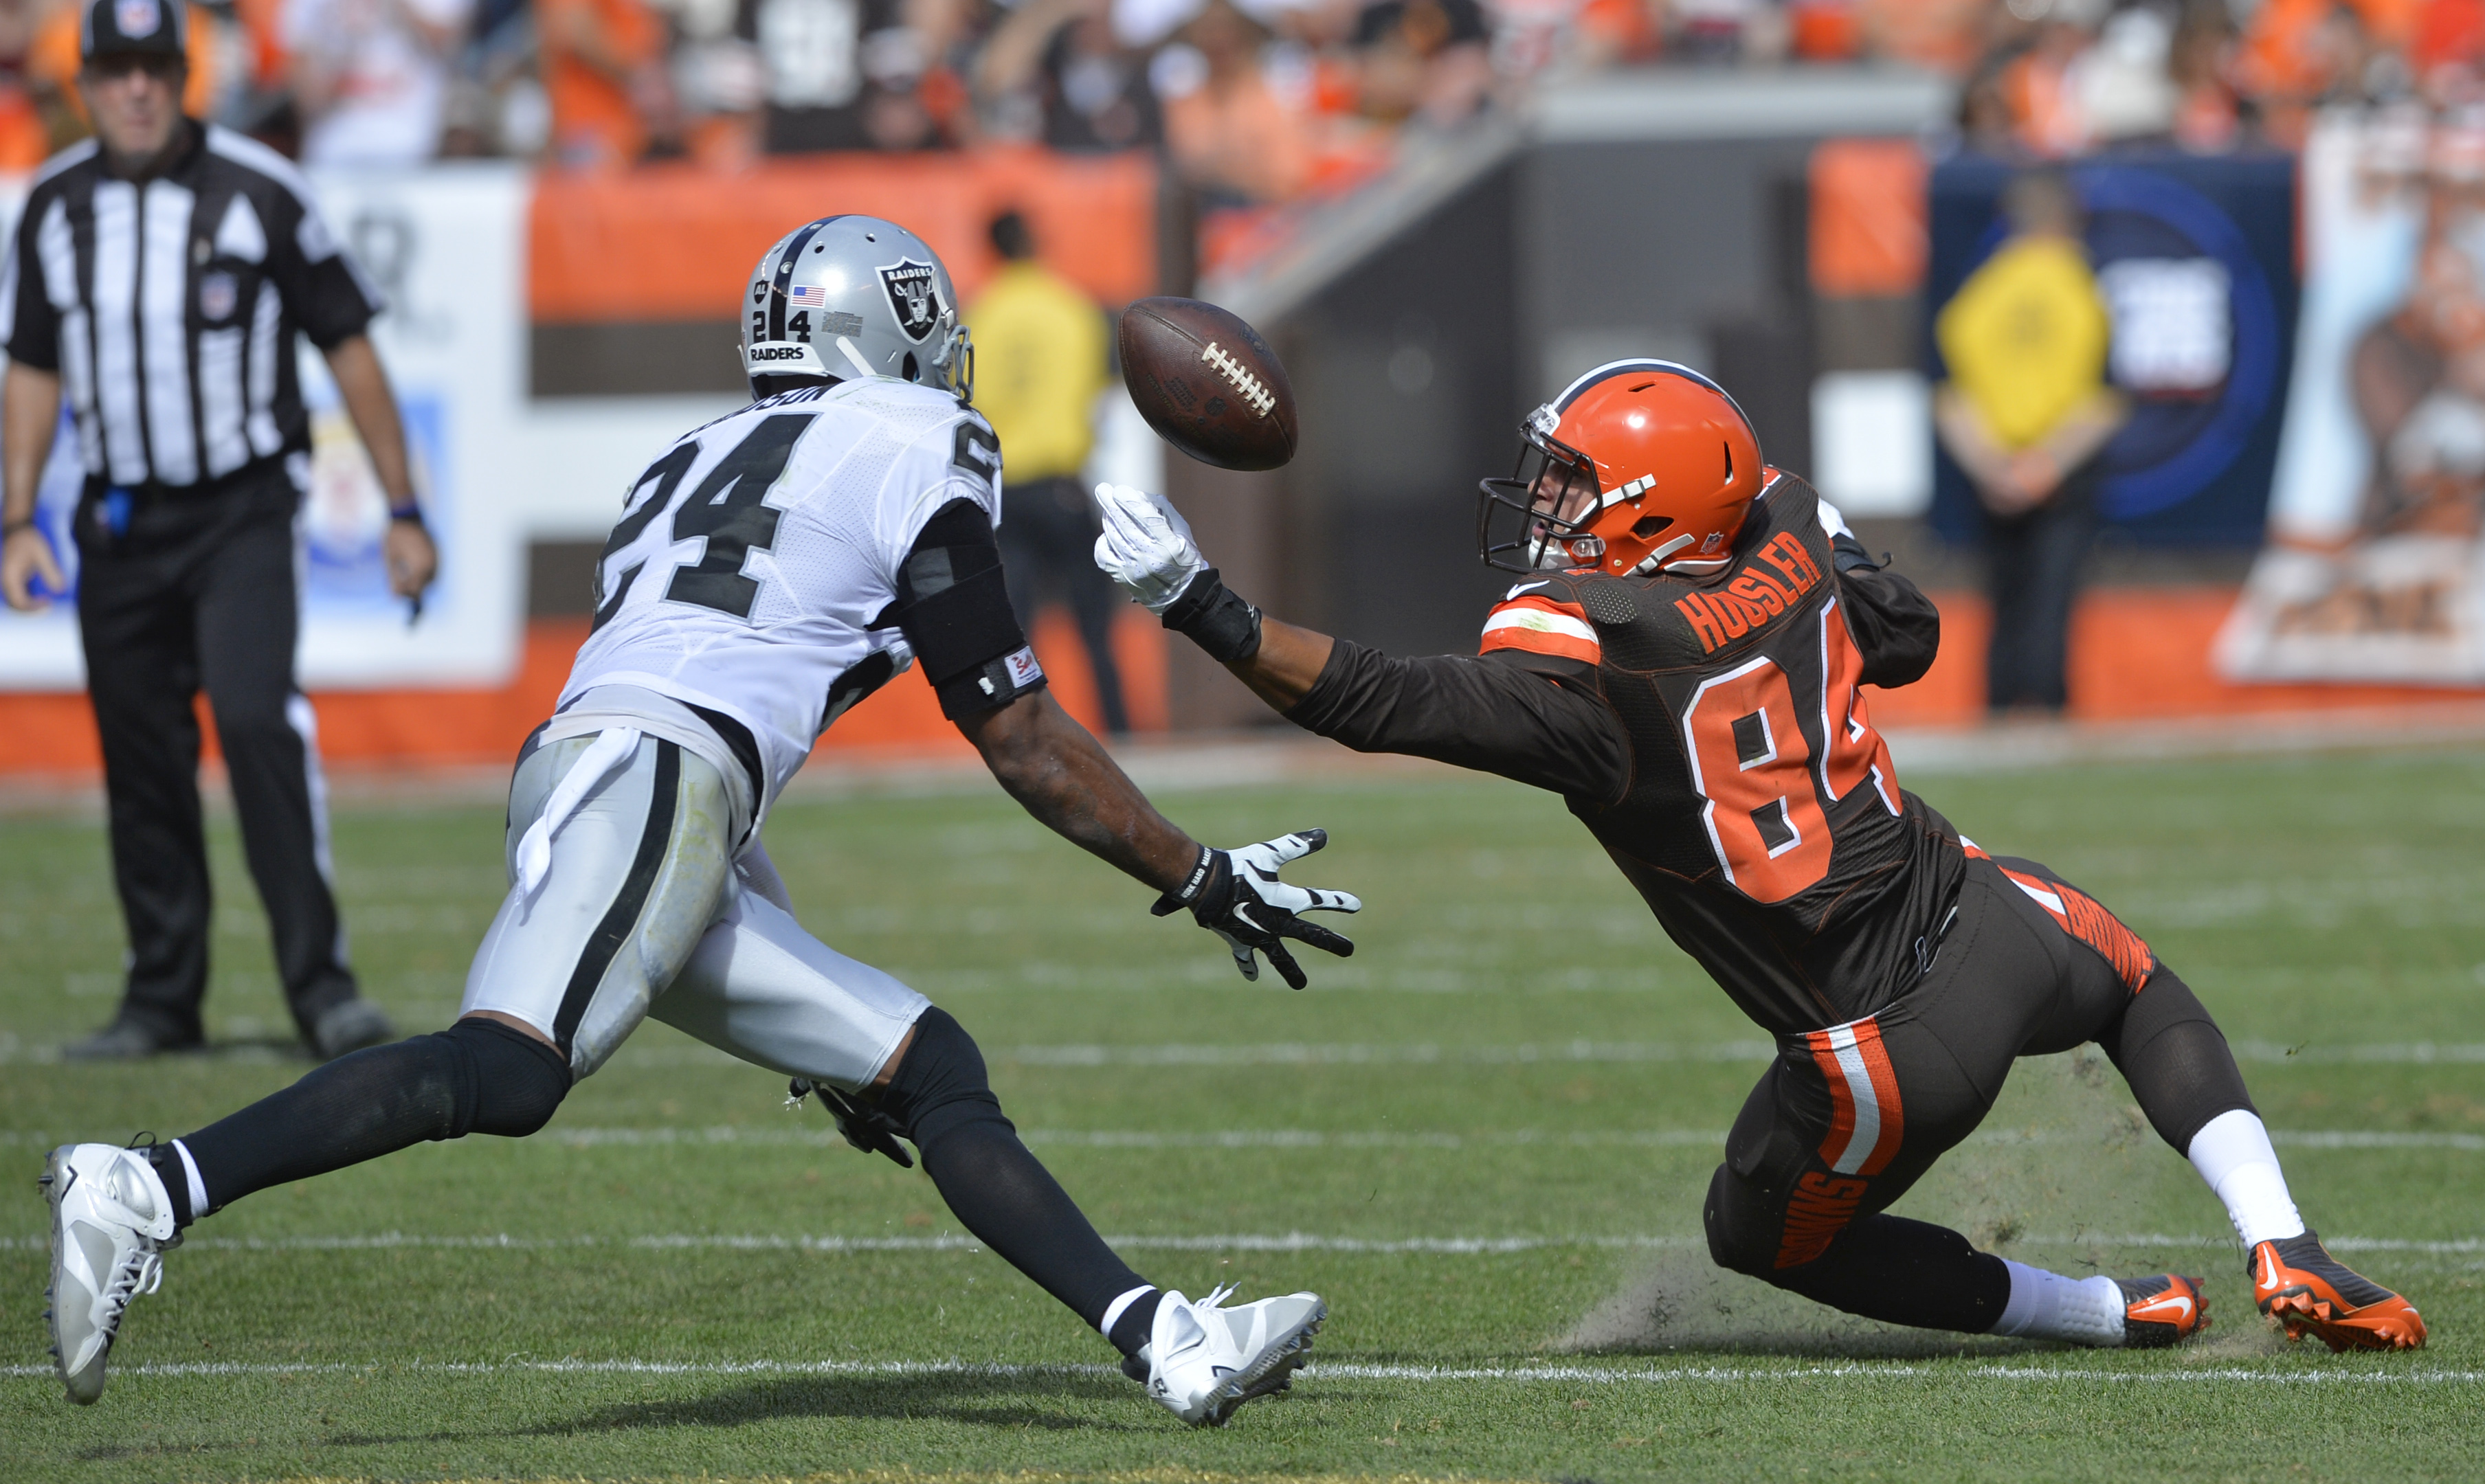 Cleveland Browns tight end Rob Housler (84) cannot catch a pass under pressure from Oakland Raiders free safety Charles Woodson (24) during the second half of an NFL football game, Sunday, Sept. 27, 2015, in Cleveland. (AP Photo/David Richard)